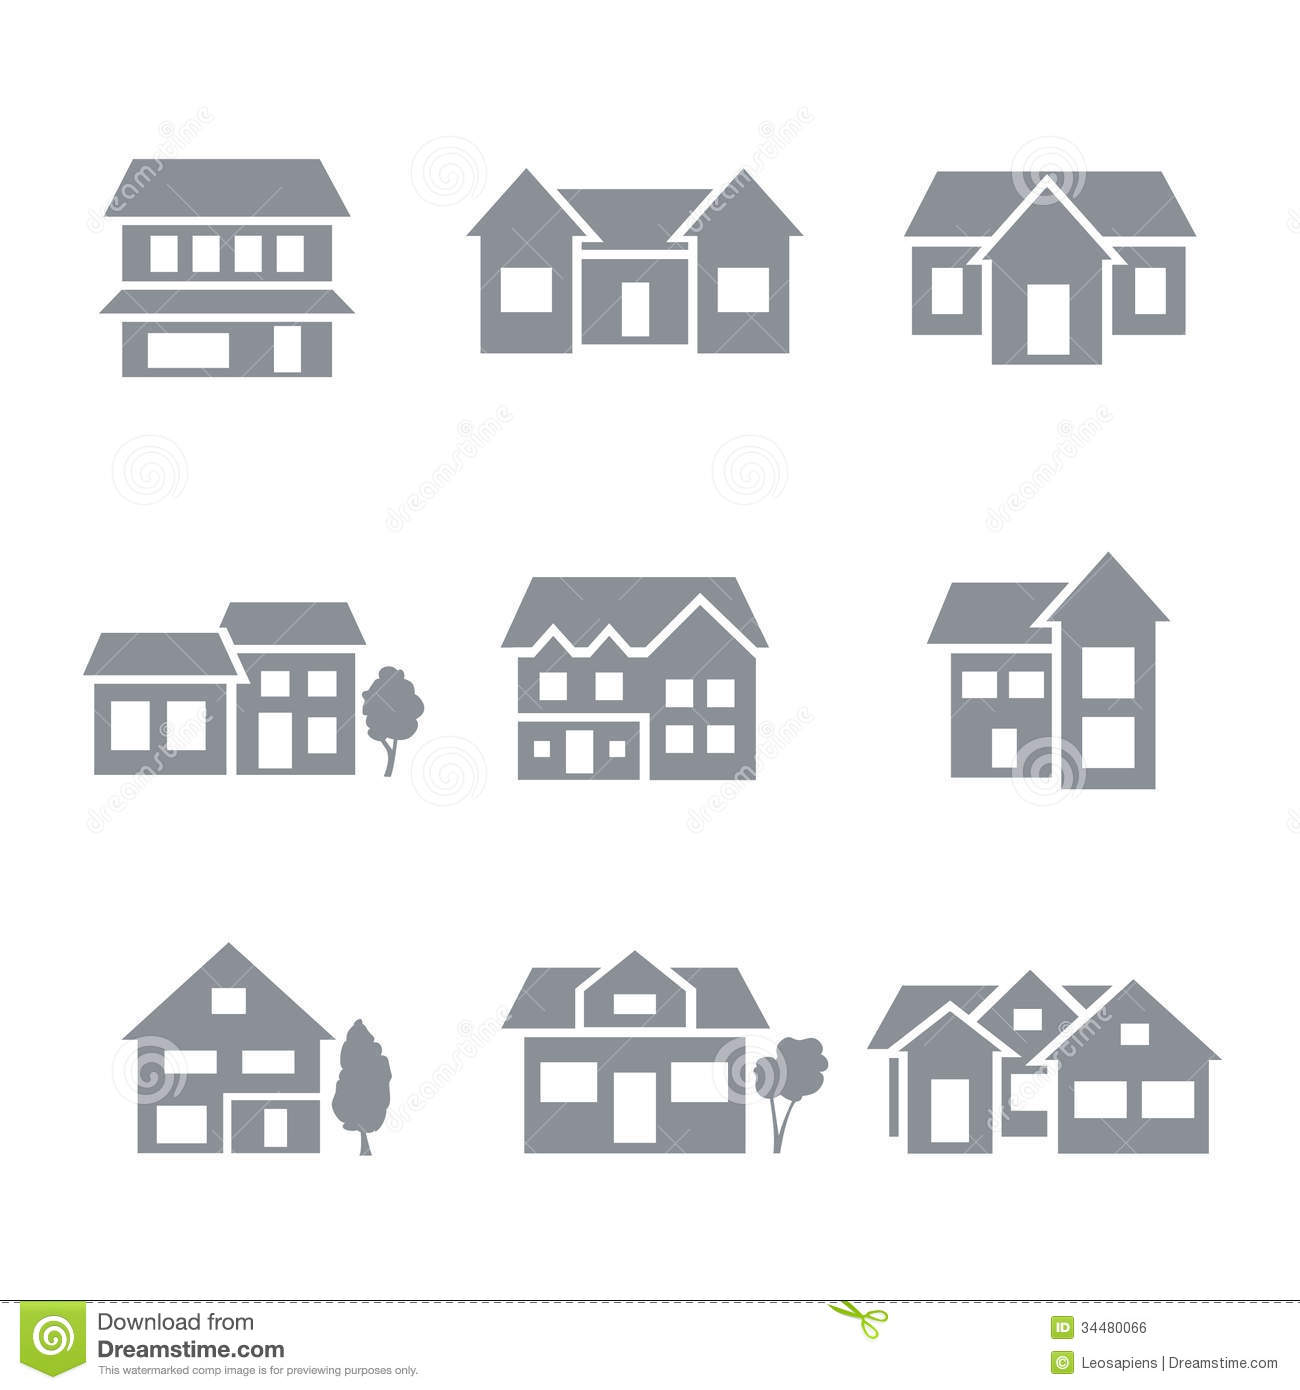 5 Residential Building Icon Images